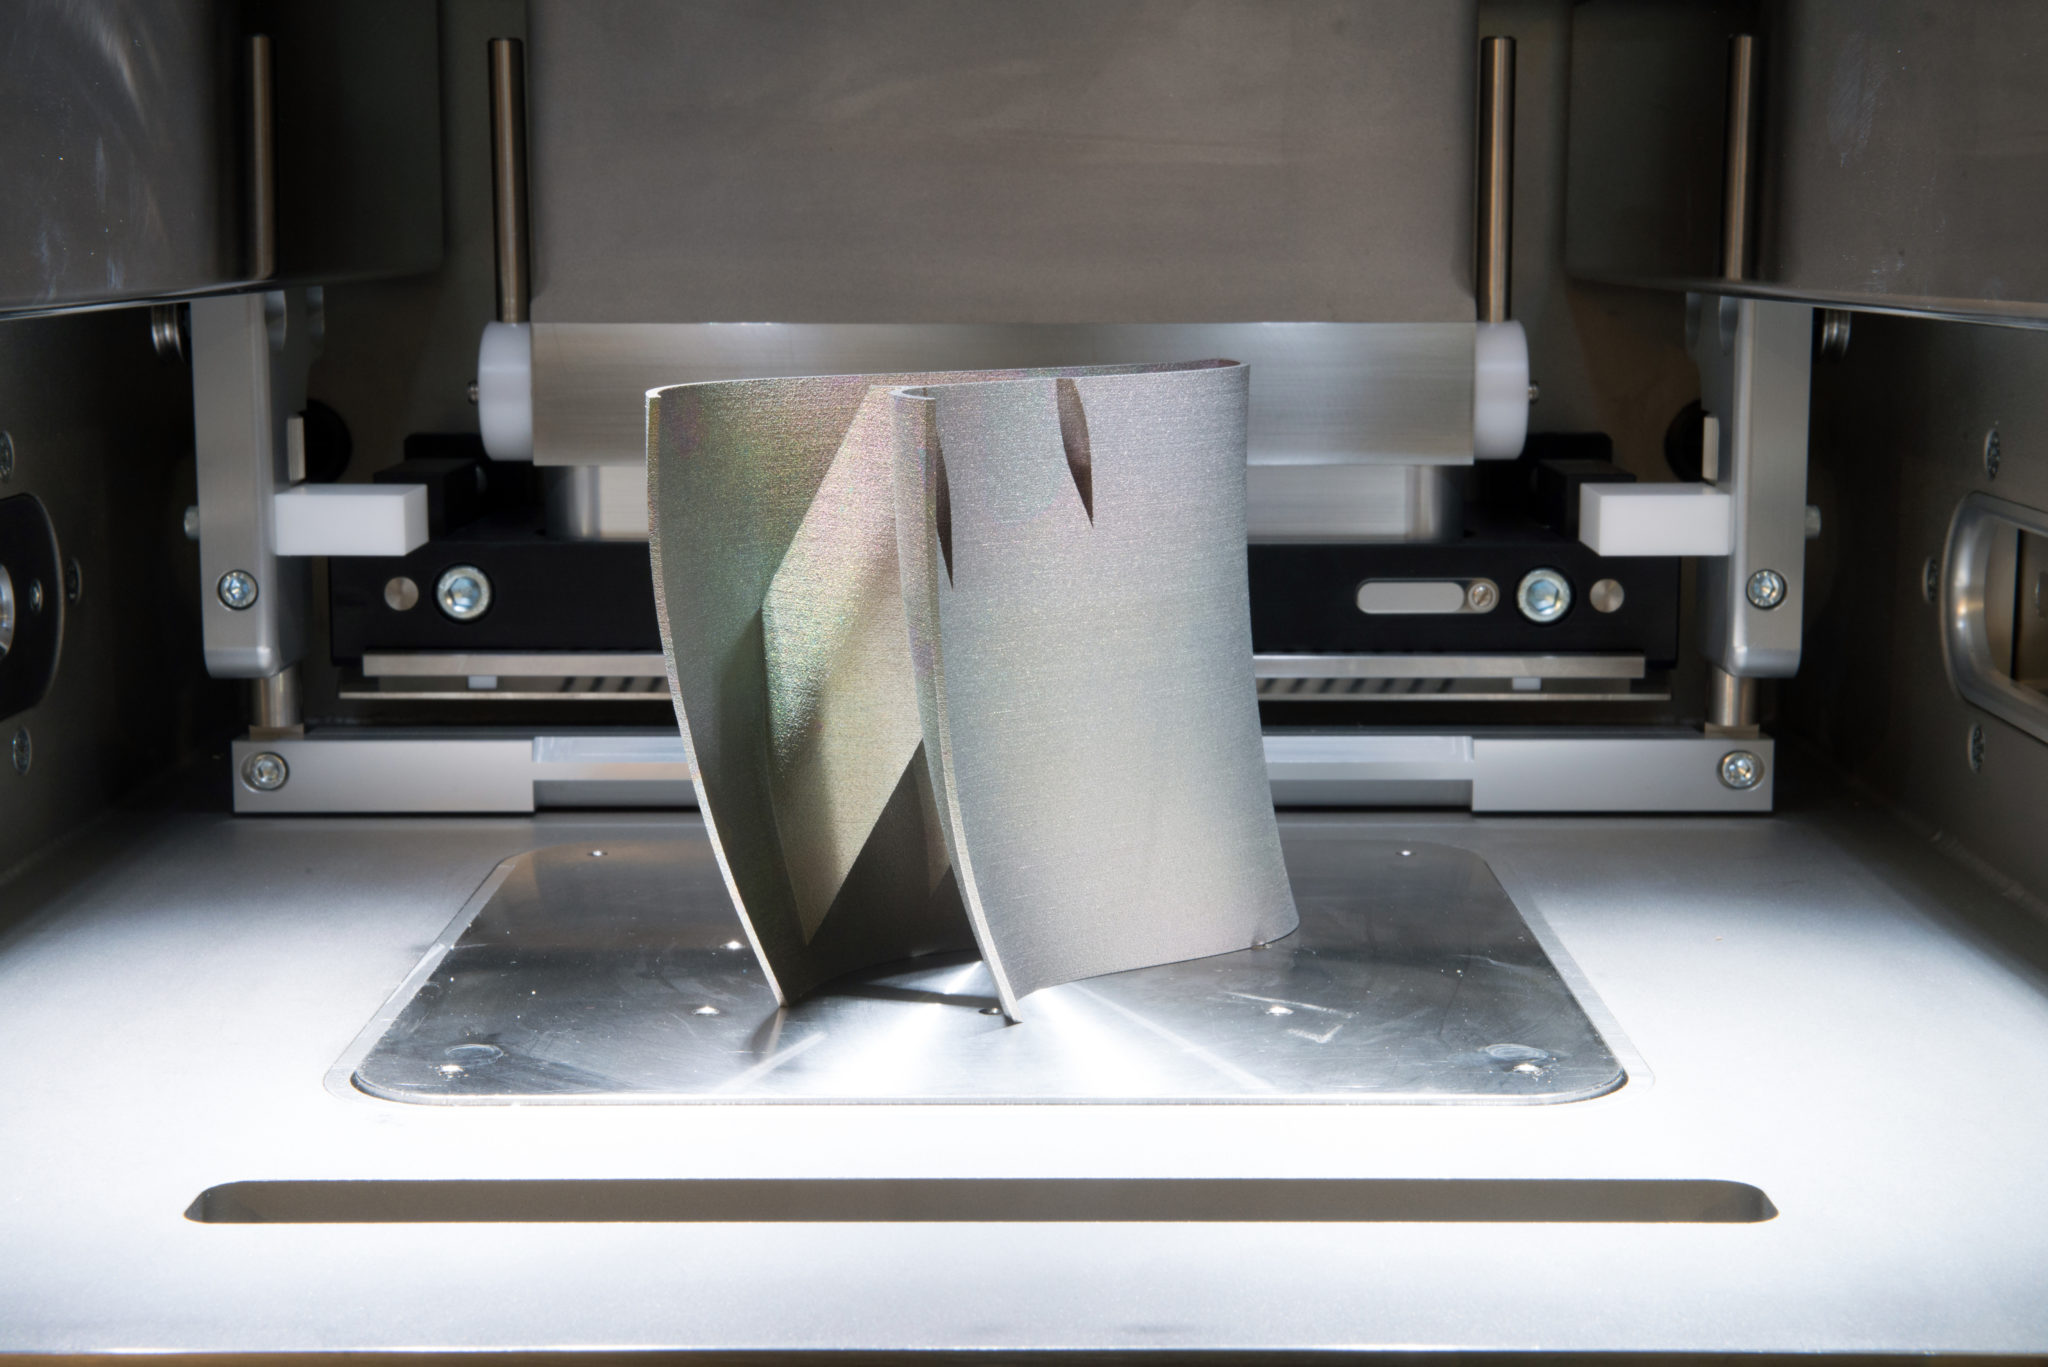 Powdered Metal printing requires clean feedstock for the best quality finished product.